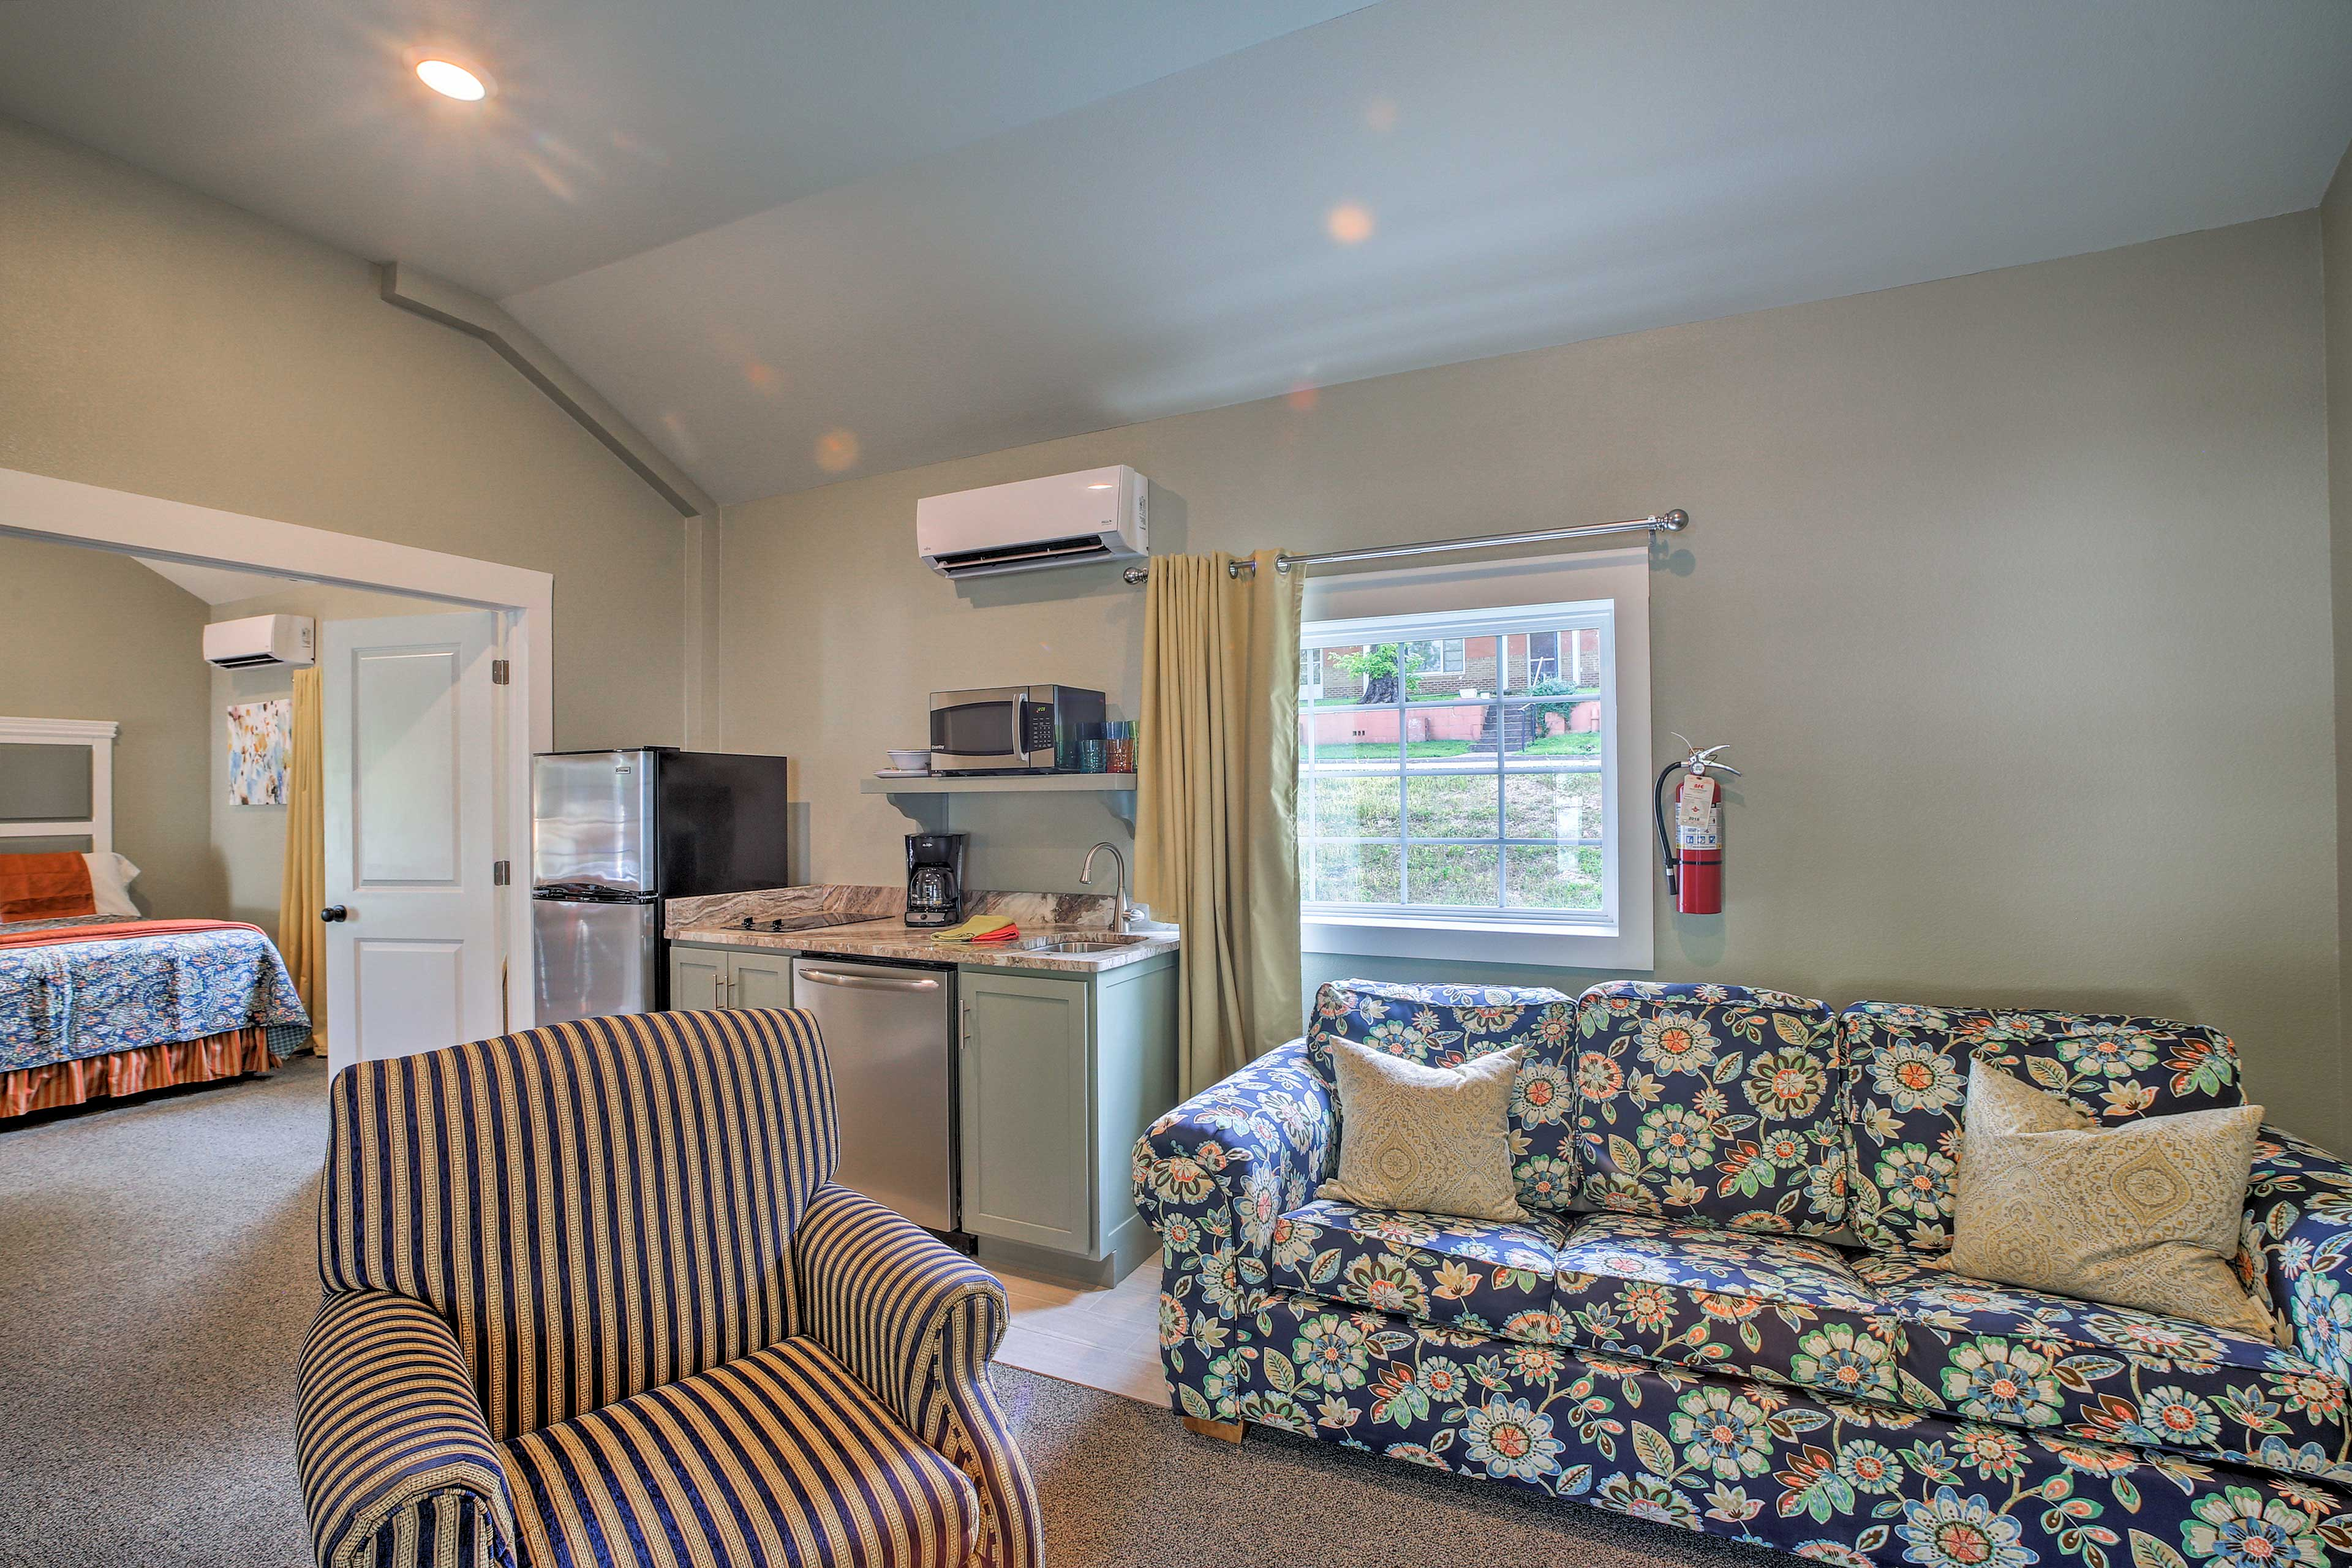 With beds for 6, this home is perfect for families.